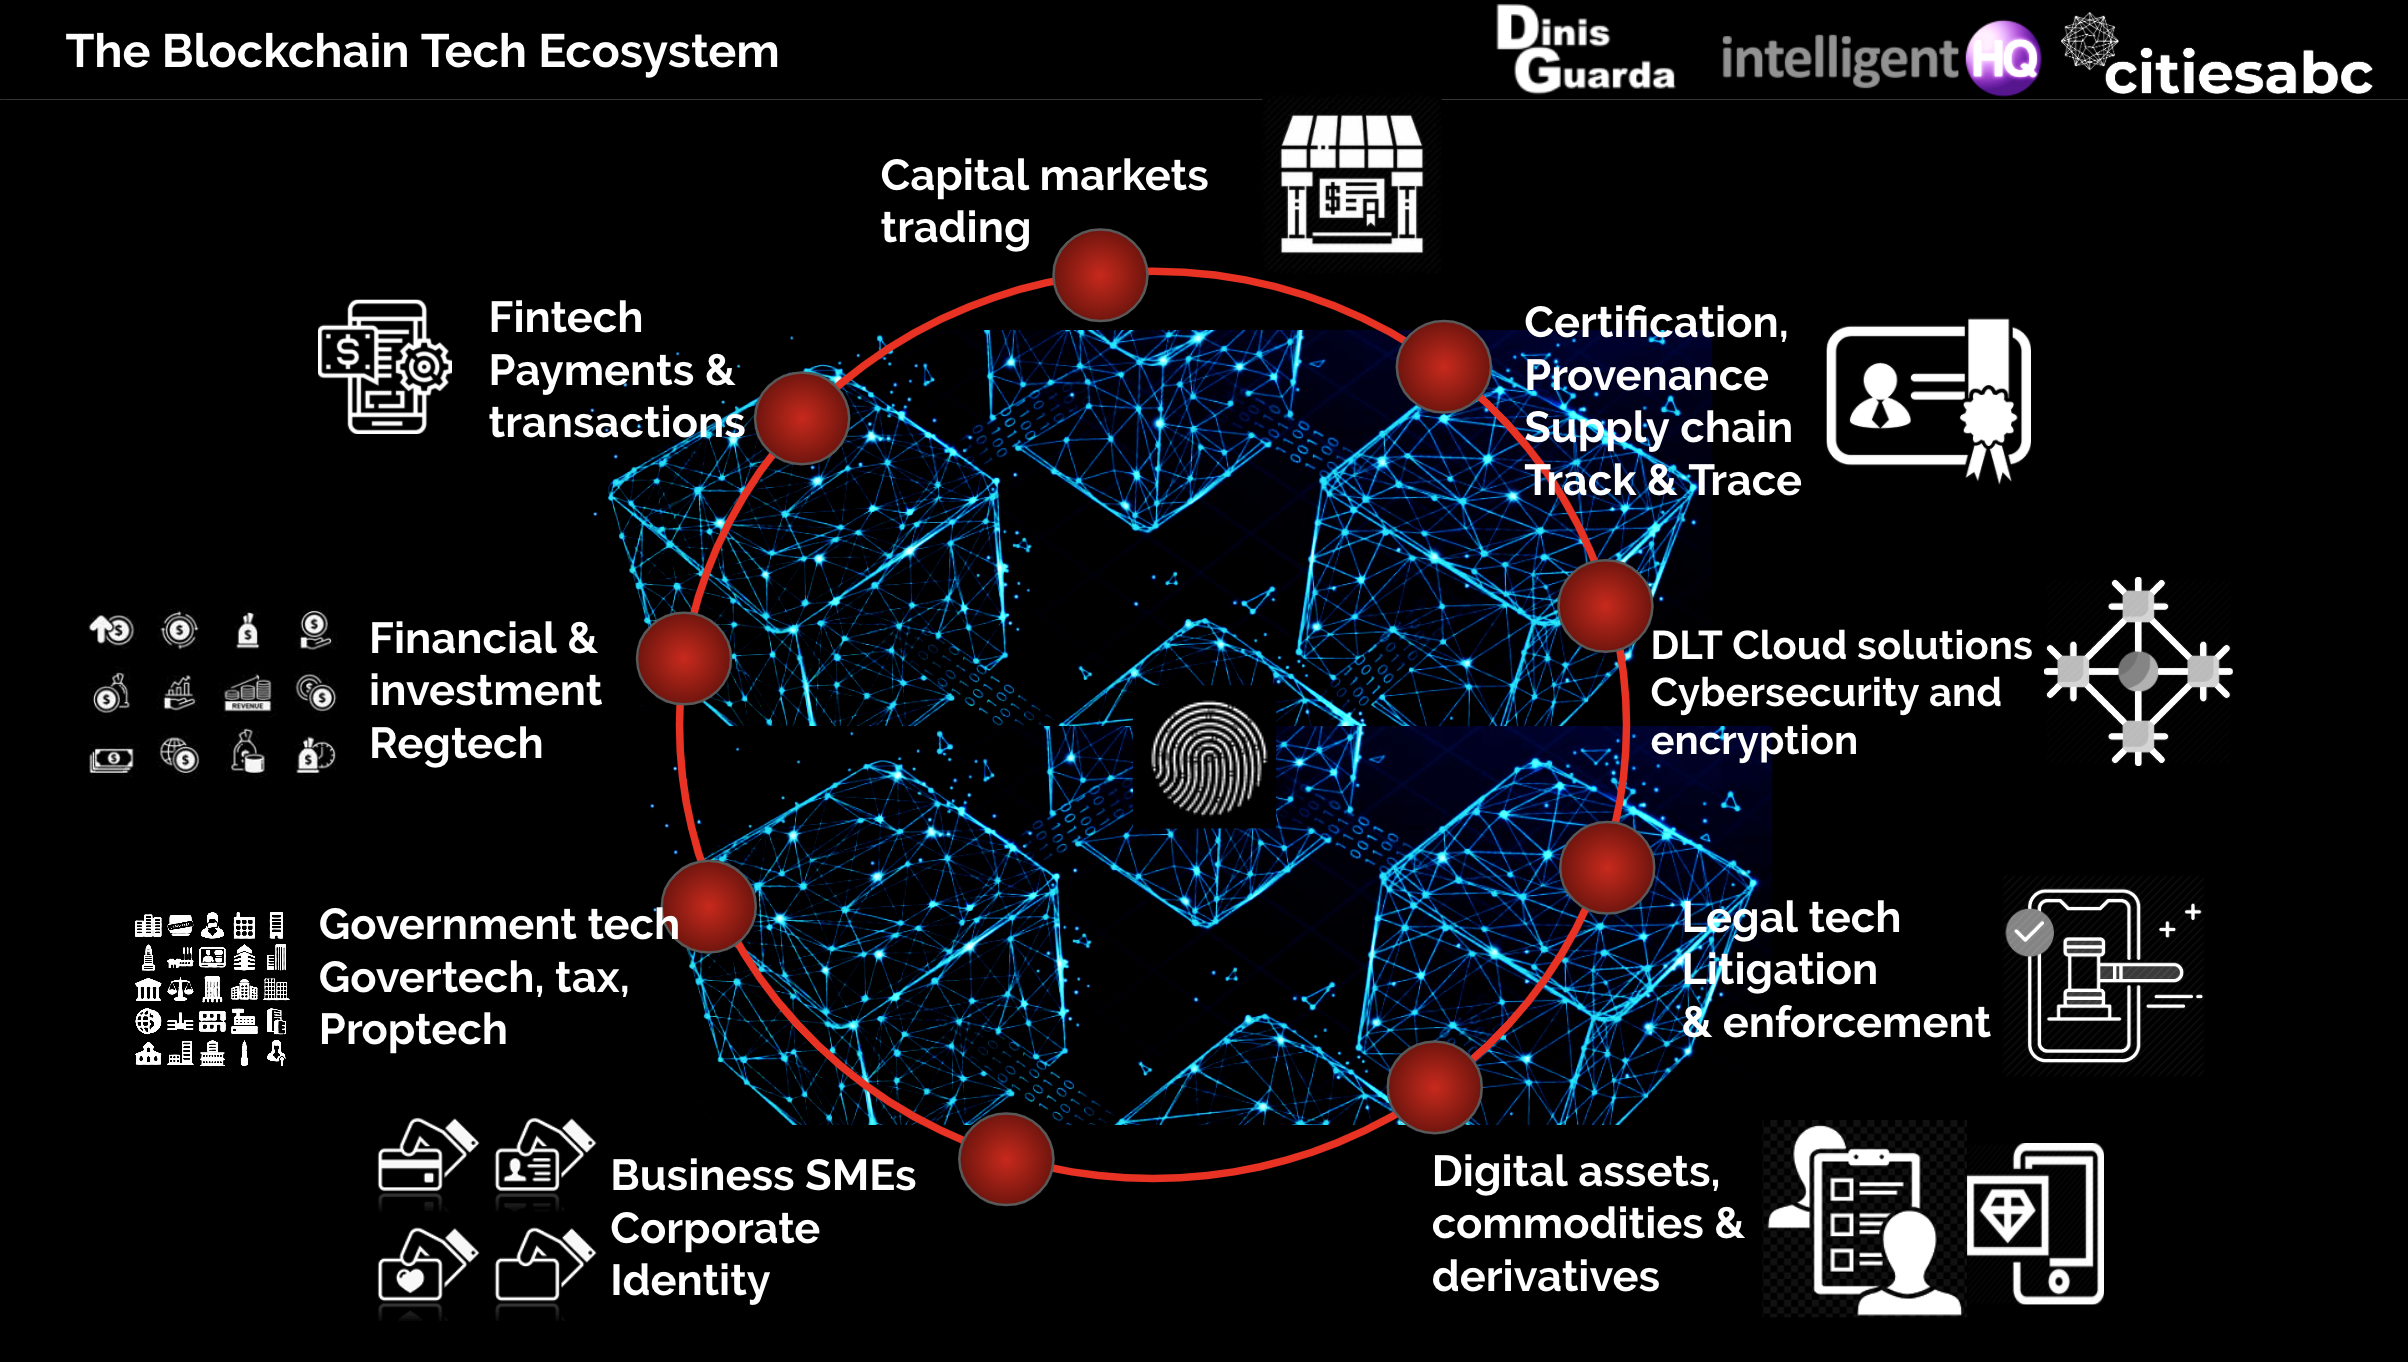 The Blockchain Tech Ecosystem and Features